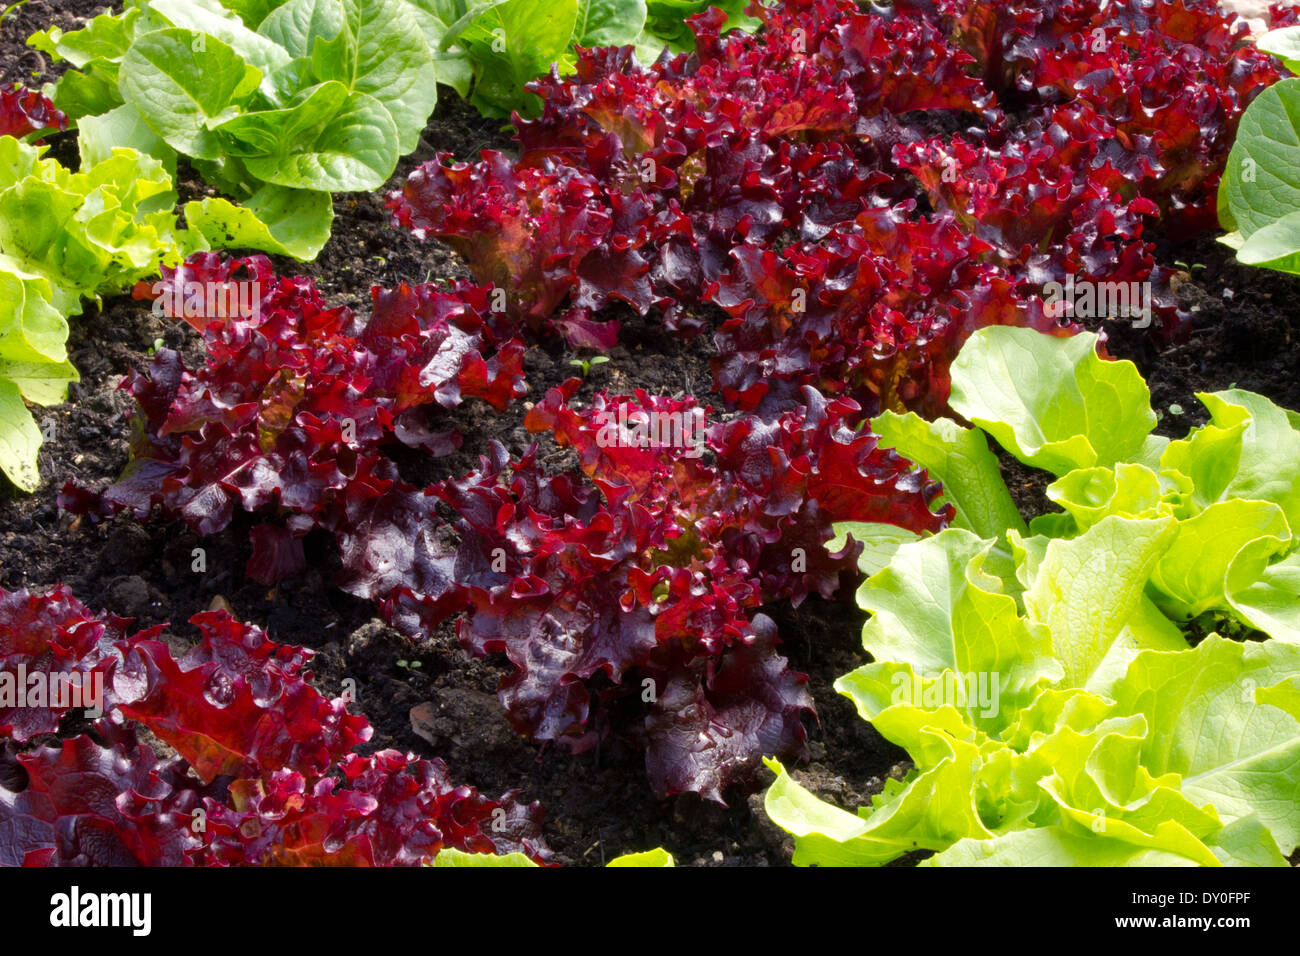 Red leaf lettuce, planted in two rows between green leaf lettuce, the plants are approx seven weeks old and healthy - Stock Image